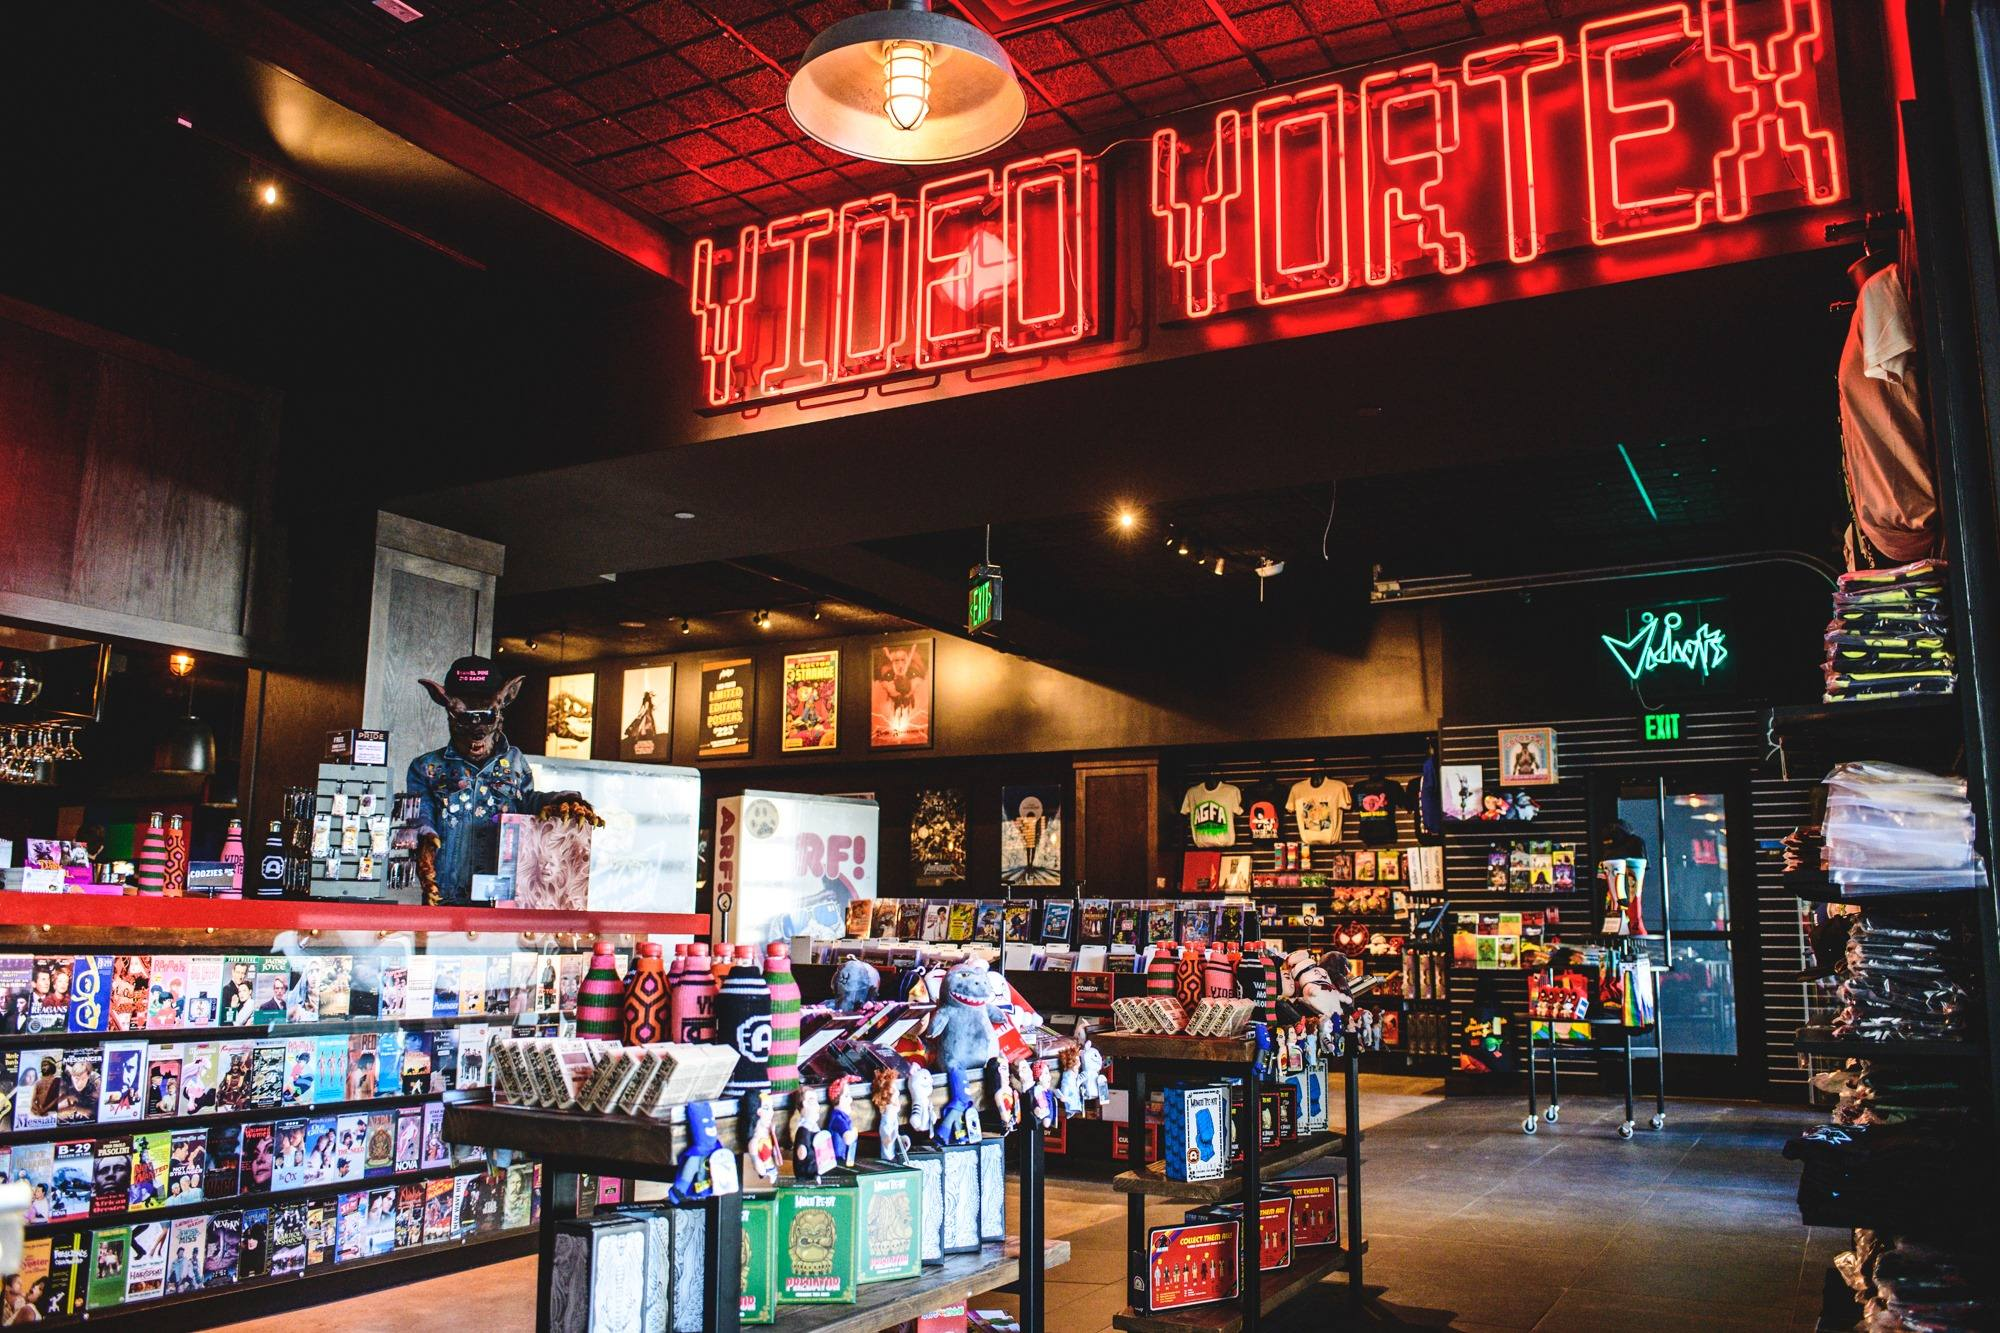 Video Vortex | Photo: Alamo Drafthouse Los Angeles